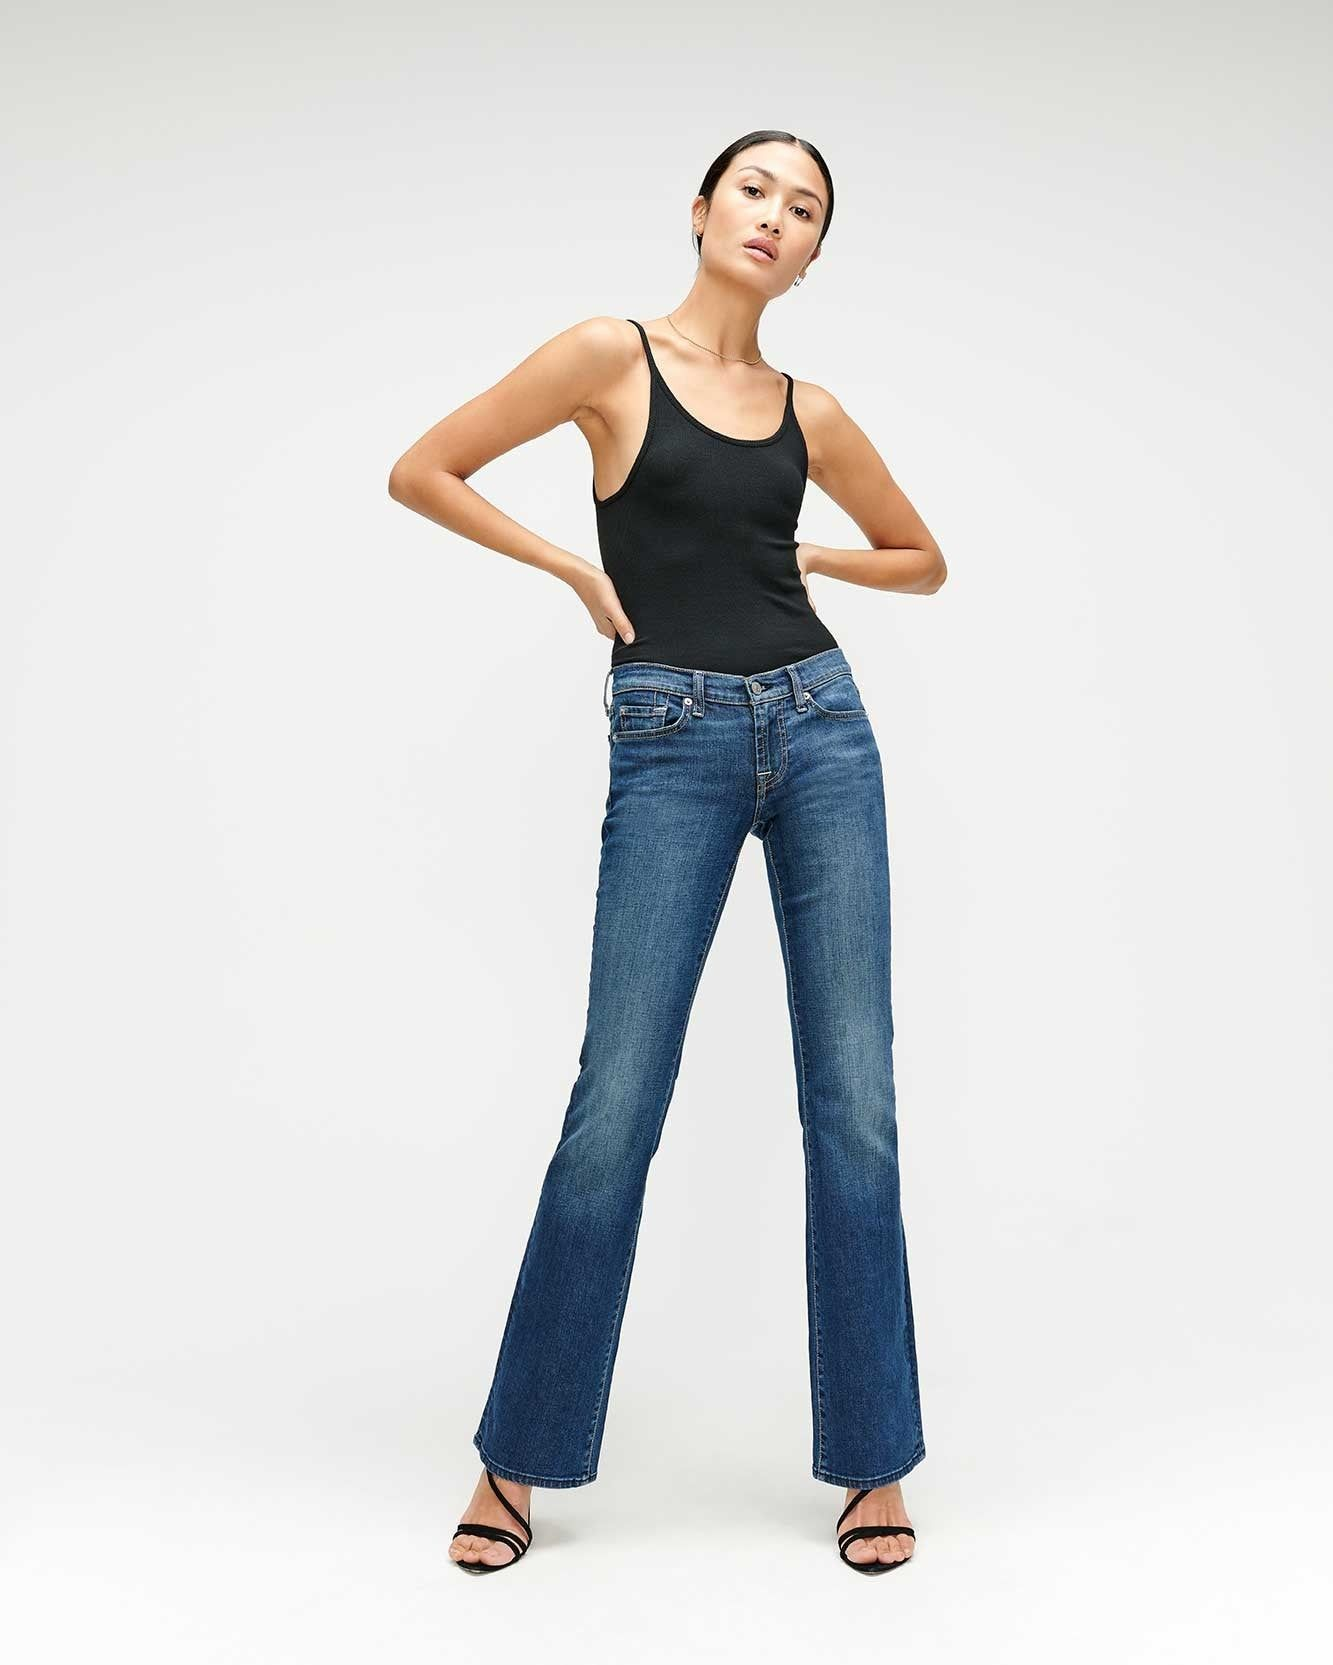 My Friend Asked What to Wear With Flare Jeans, and I Suggested These 6 Basics 5